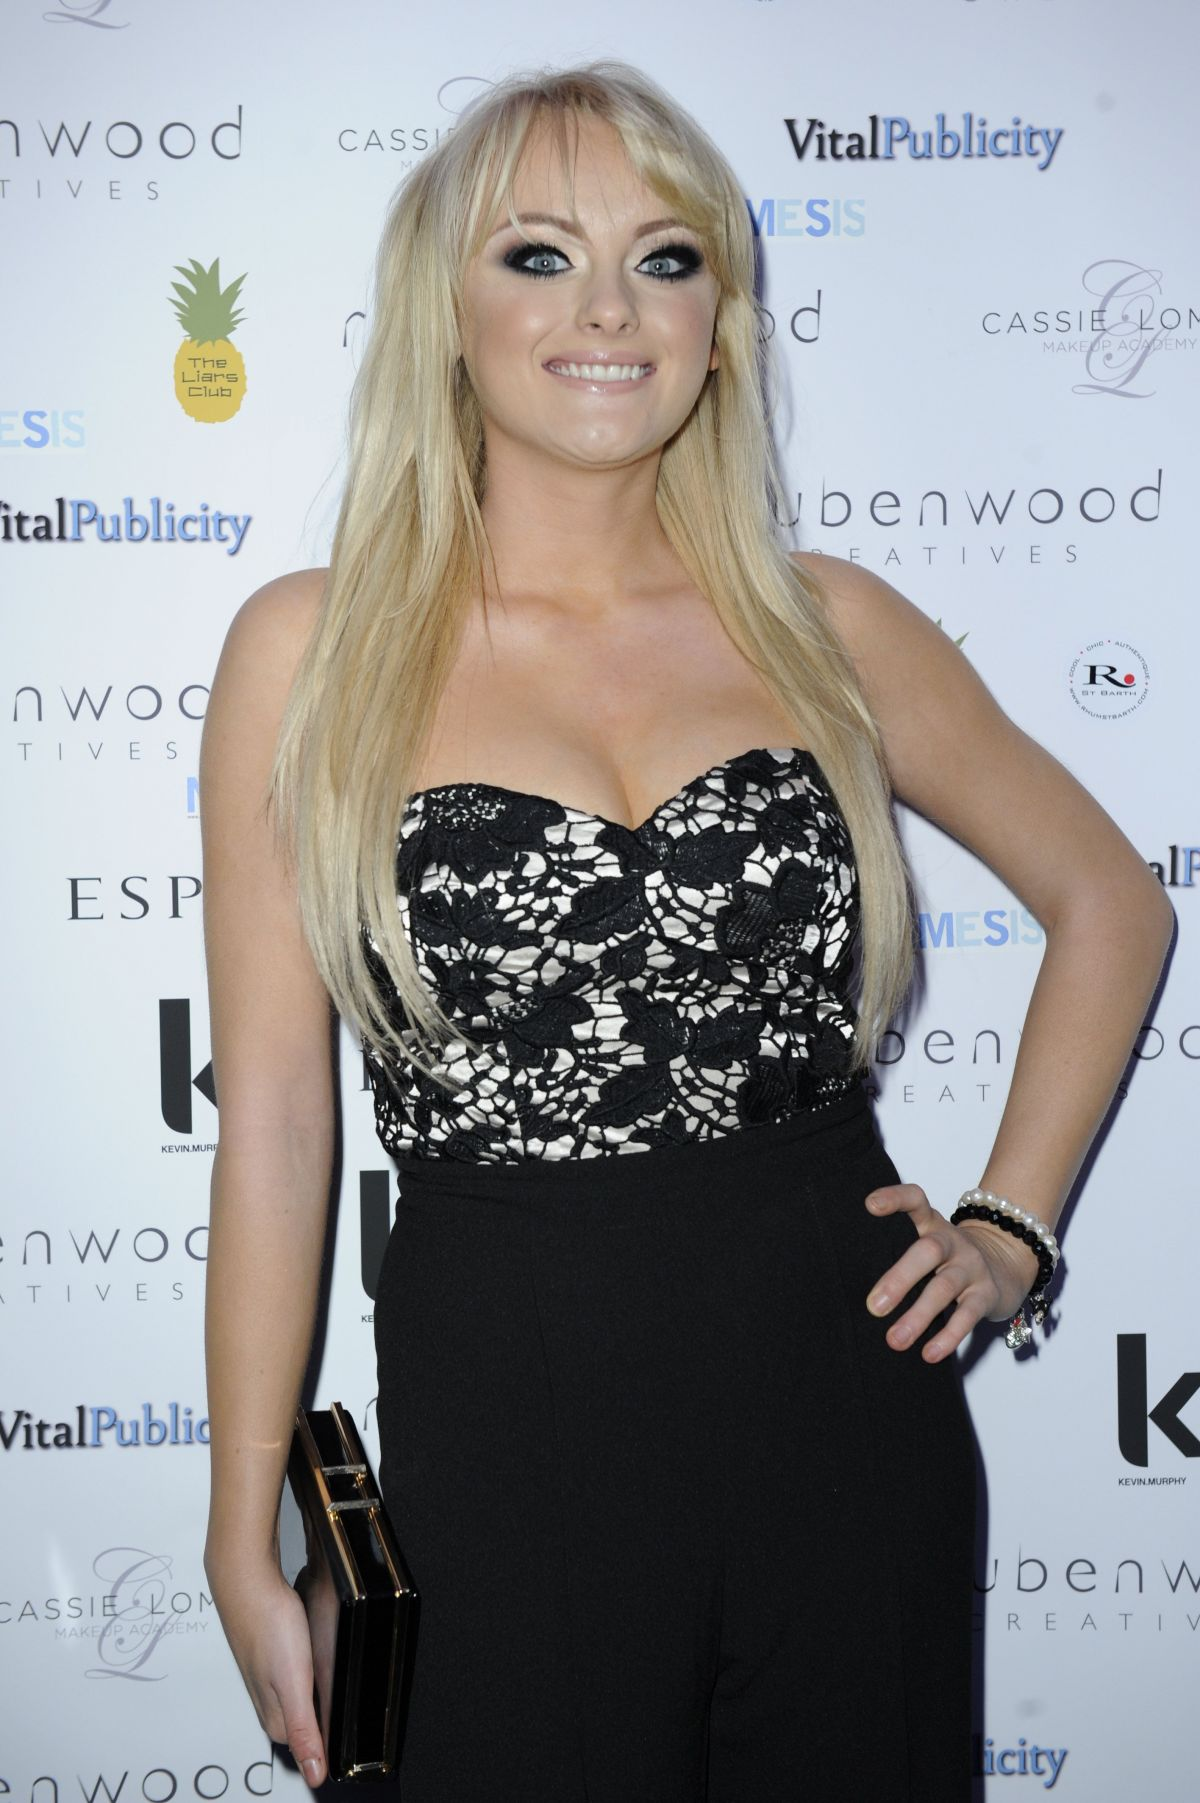 KATIE MCGLYNN at Reubenwood Event in Manchester